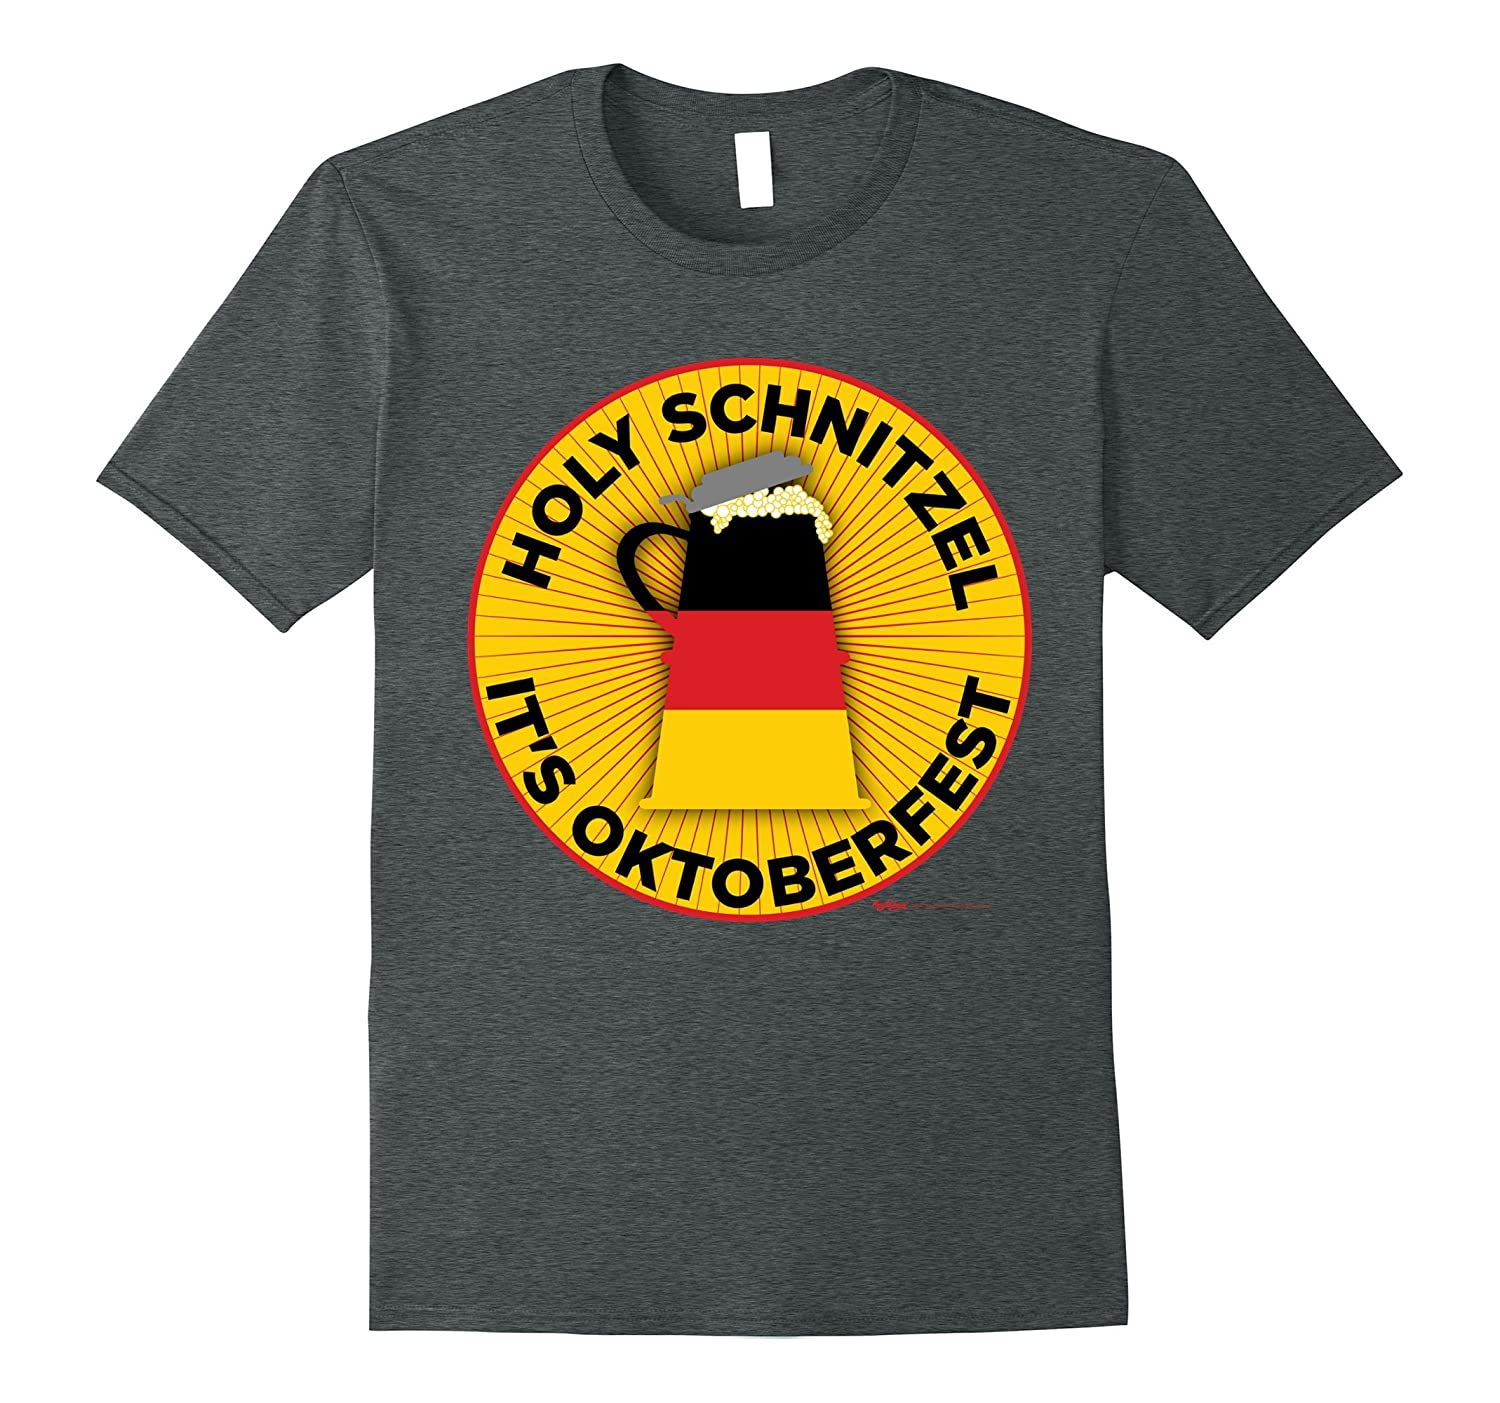 Holy Schnitzel It's Oktoberfest! 2017 Drinking T Shirt-BN